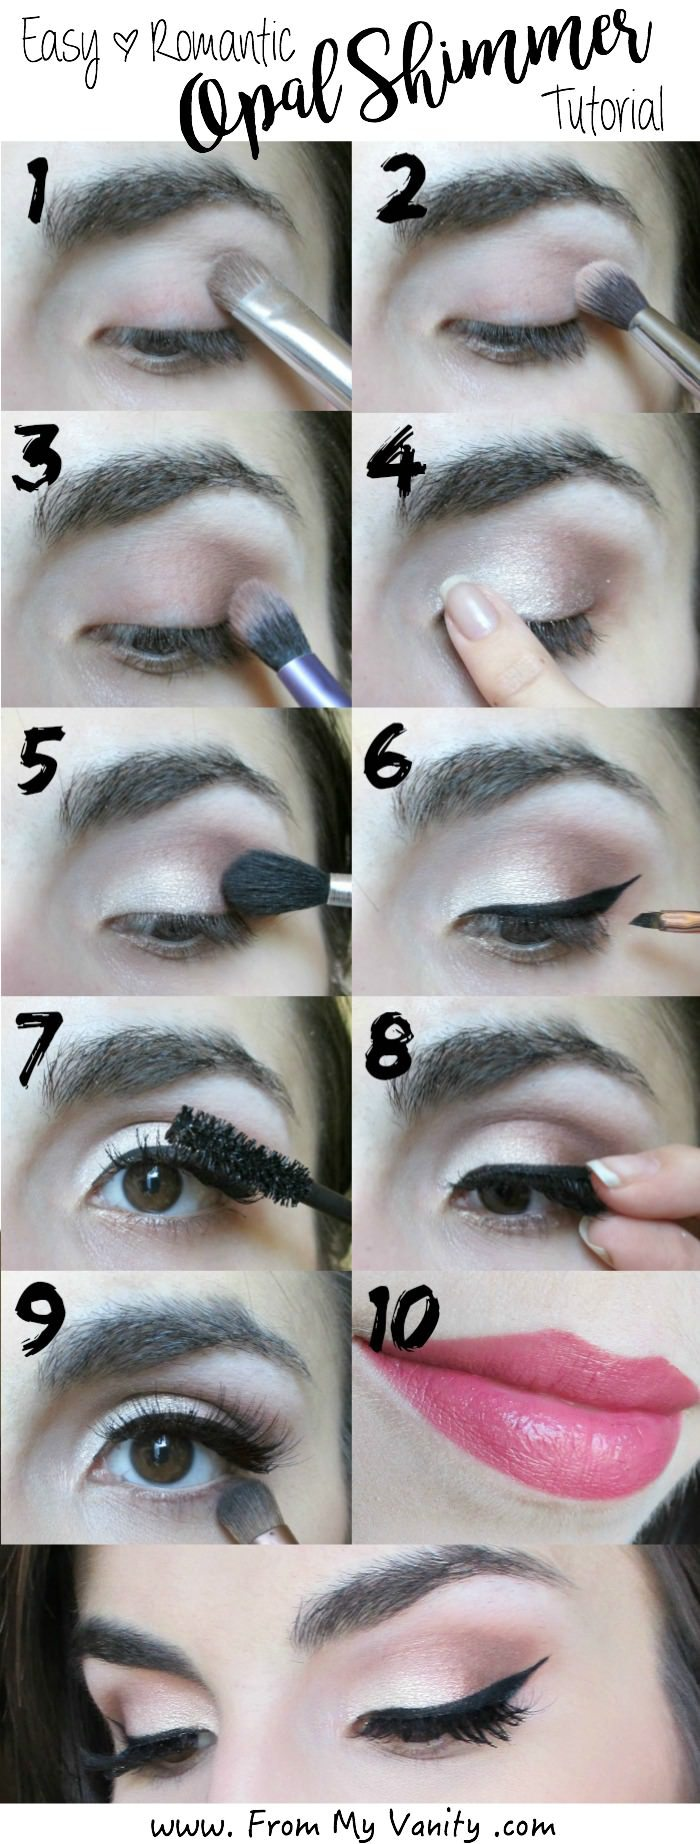 25 Prom Makeup Ideas Step by Step Makeup Tutorials 2019